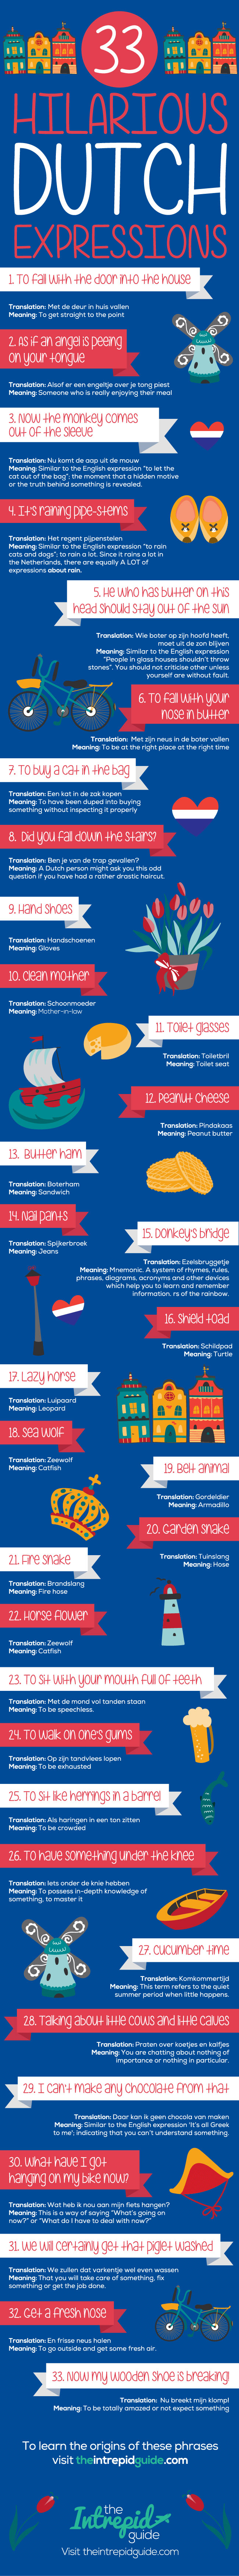 dutch phrases and idioms infographic